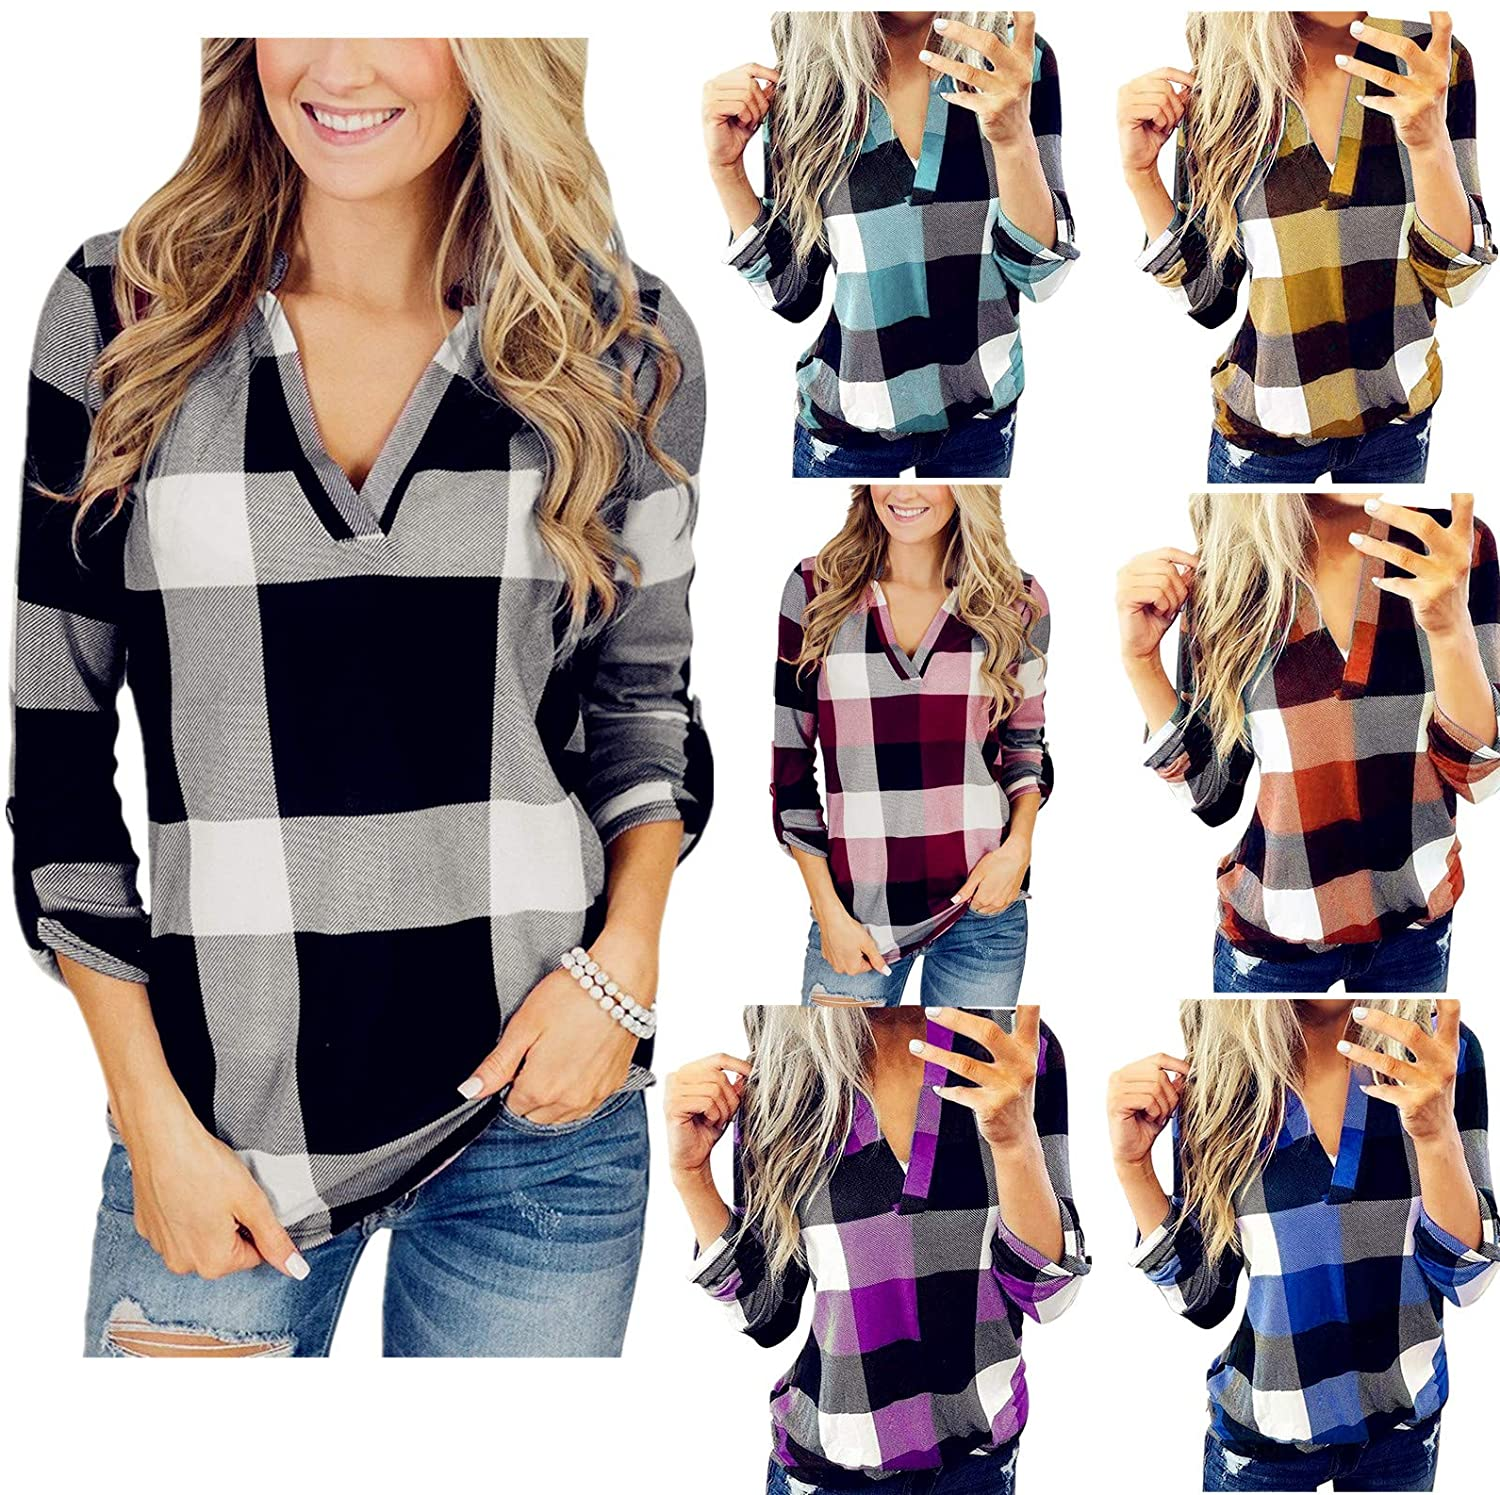 Women Roll Up Long Sleeve Plaid Shirt Casual V-neck Loose Boyfriend Tunic T-hirts Plus Size Pullover Tops